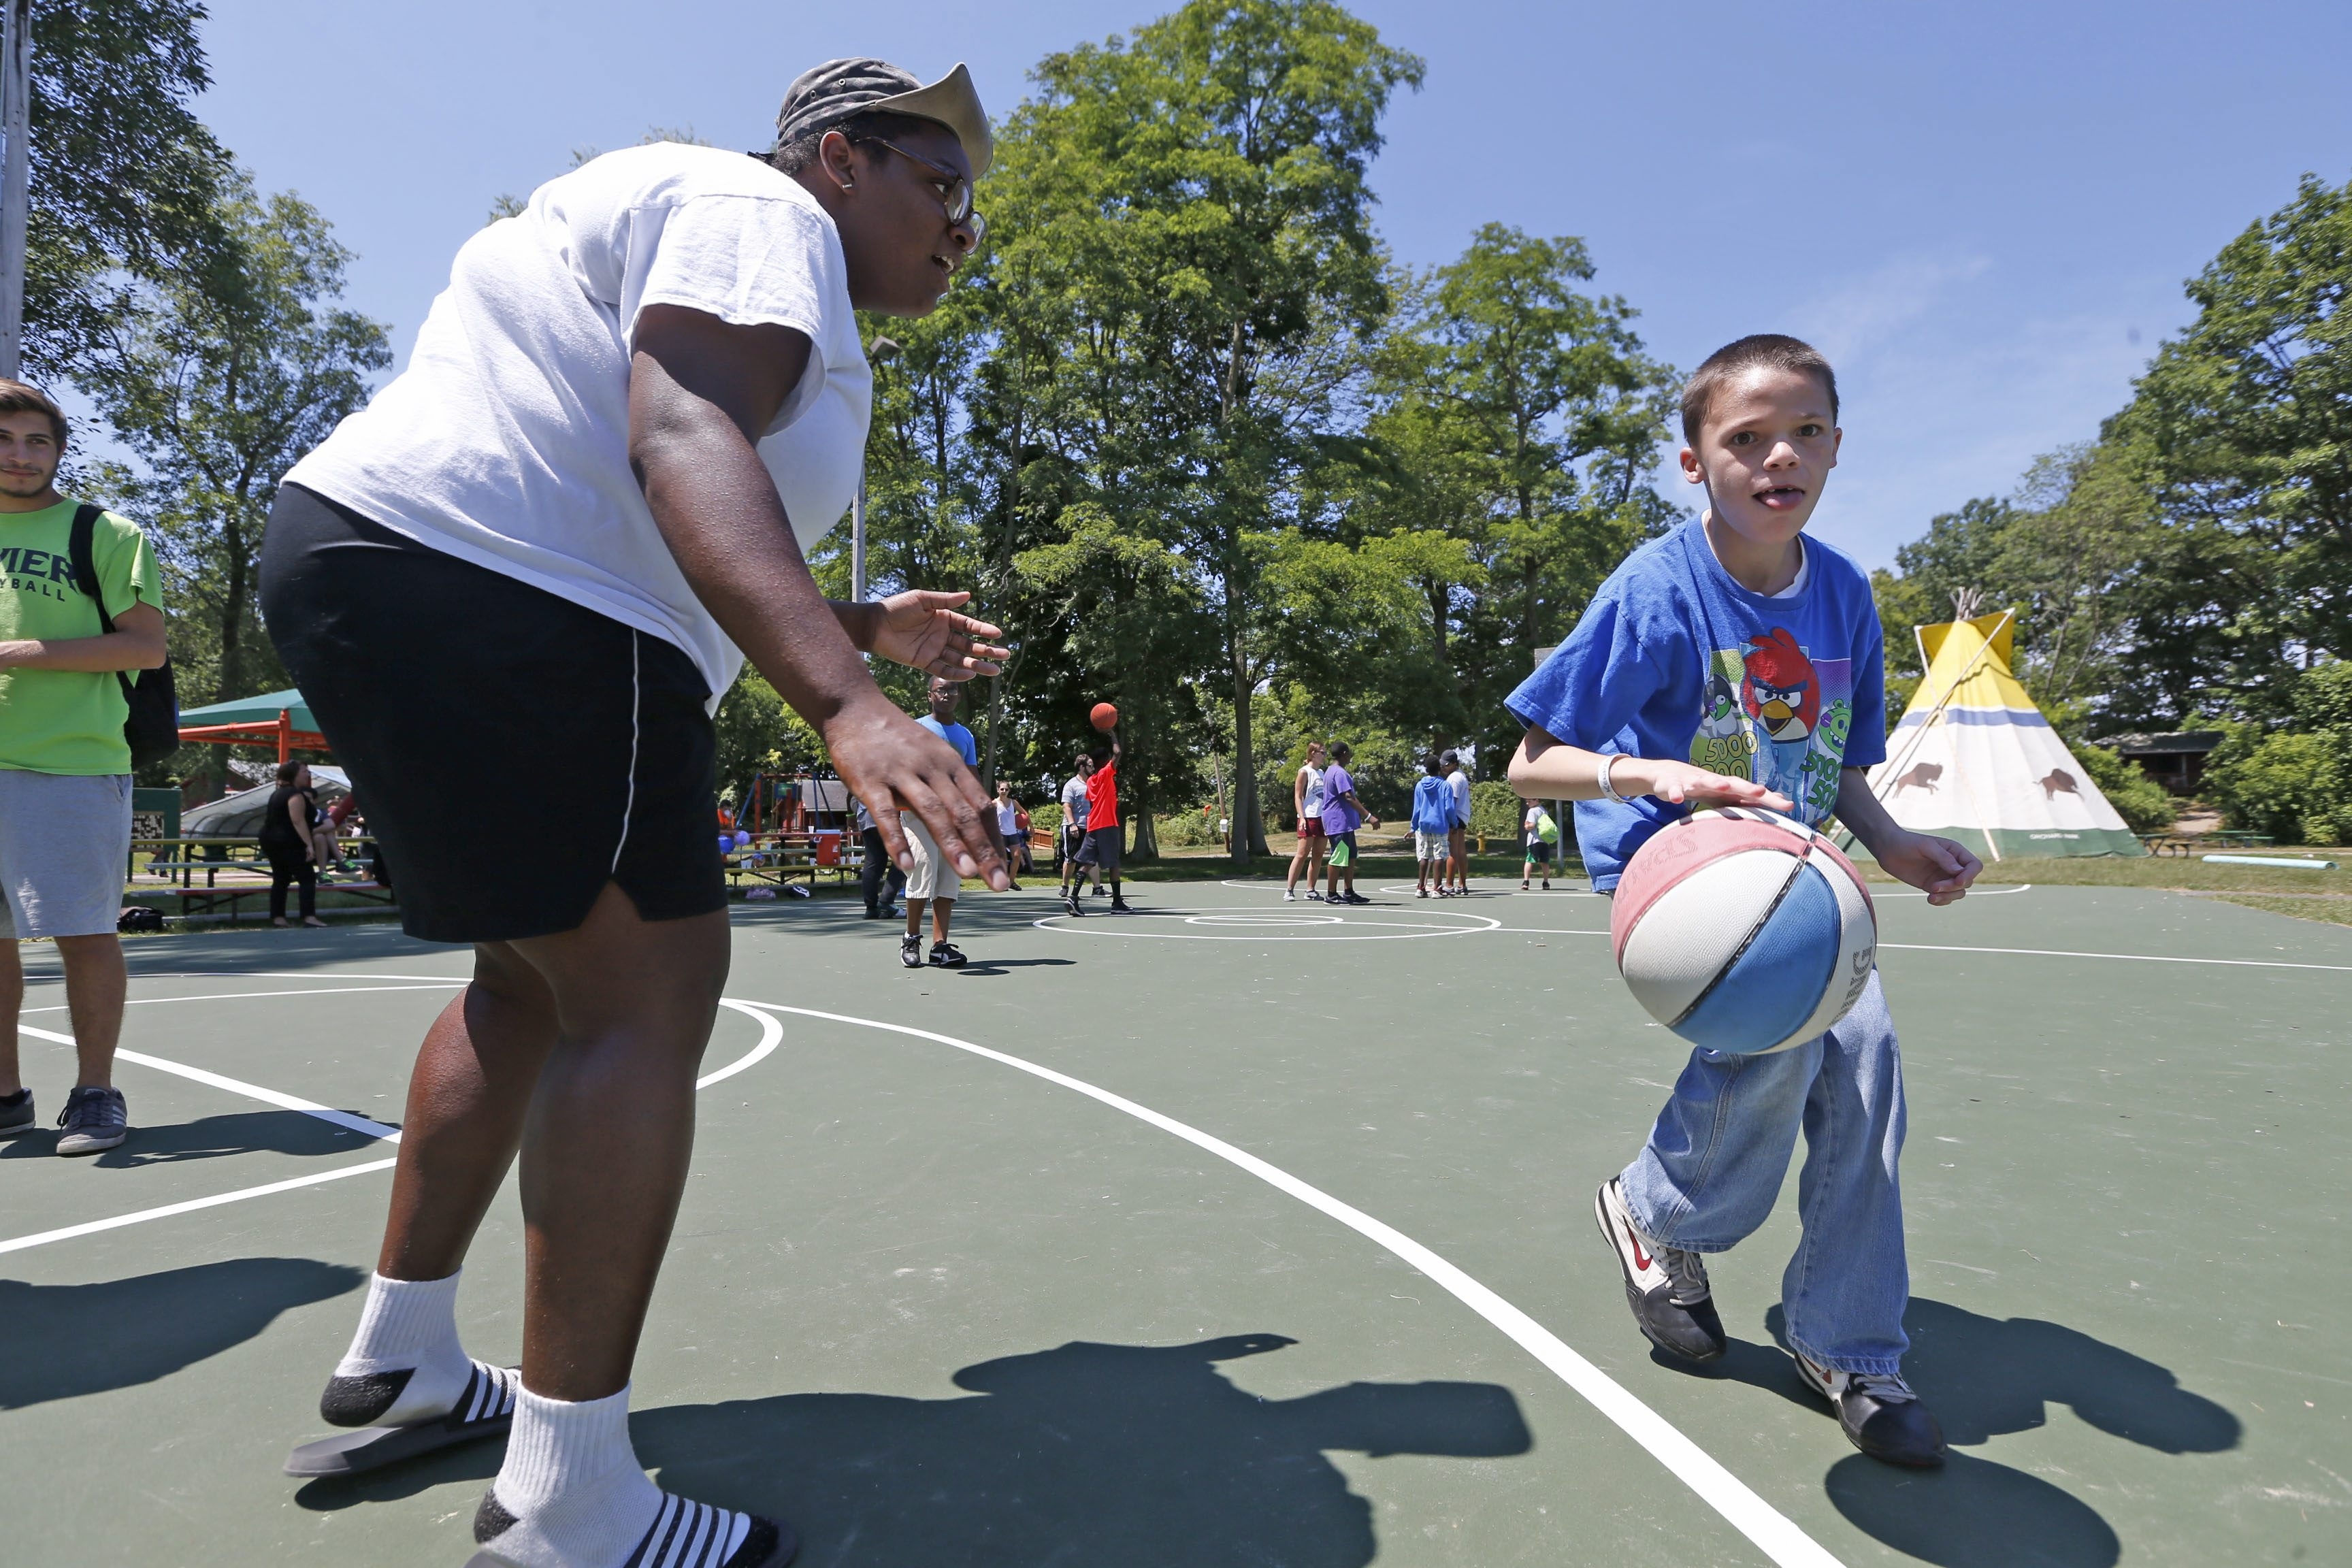 Counselor Briana 'BriZ' Harris, left, plays some one-on-one basketball with camper Kenny Skutt, 12, of Lackawanna at Cradle beach in Angola on Monday, July 11, 2016.  (Robert Kirkham/Buffalo News file photo)